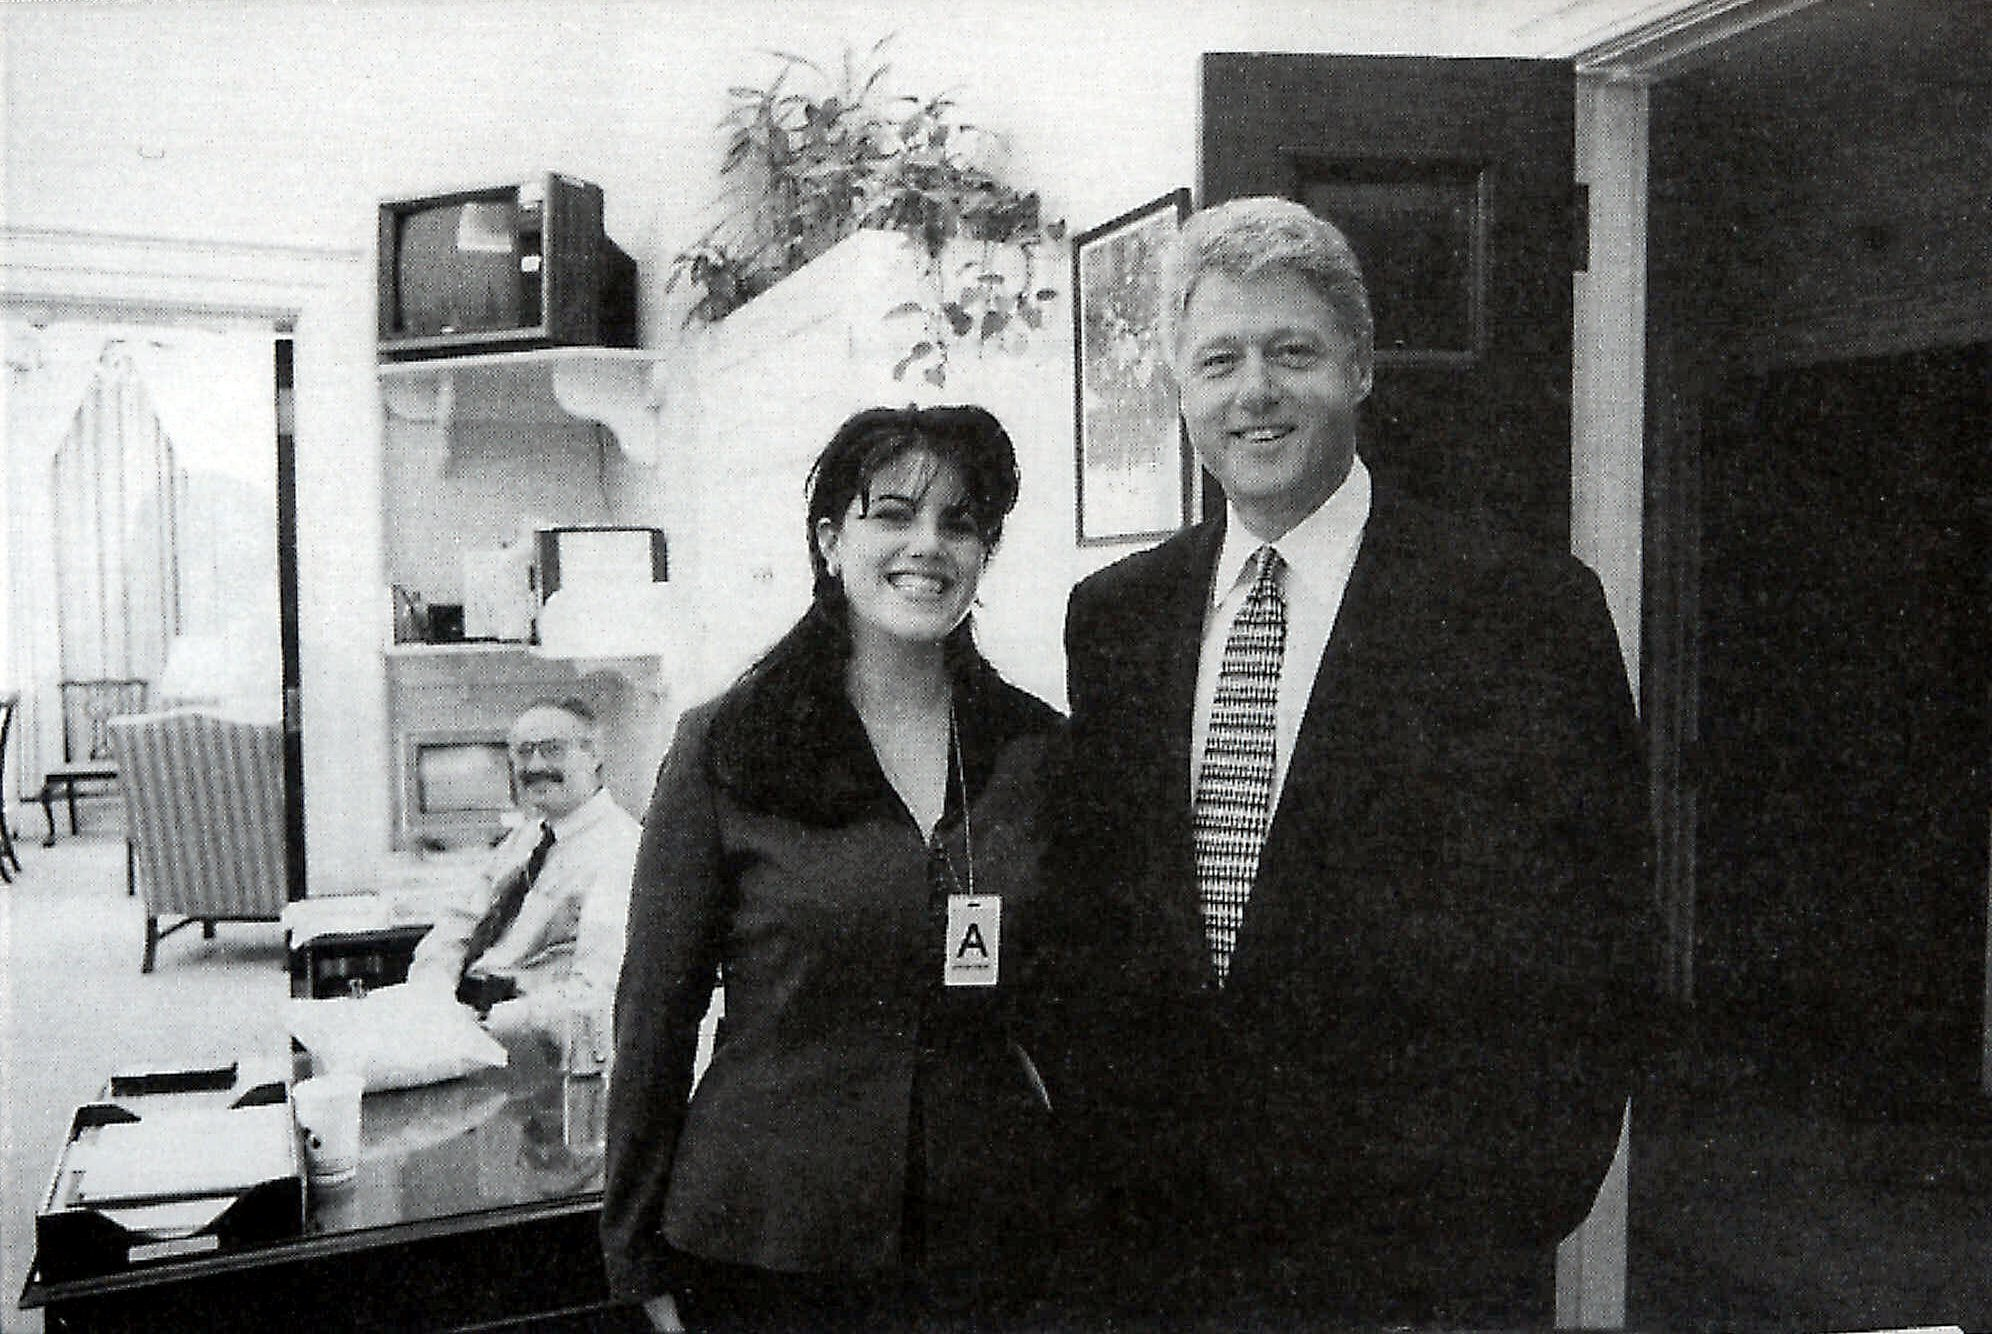 Bill Clinton and Monica Lewinsky and Gennifer Flowers and Paula Jones LA